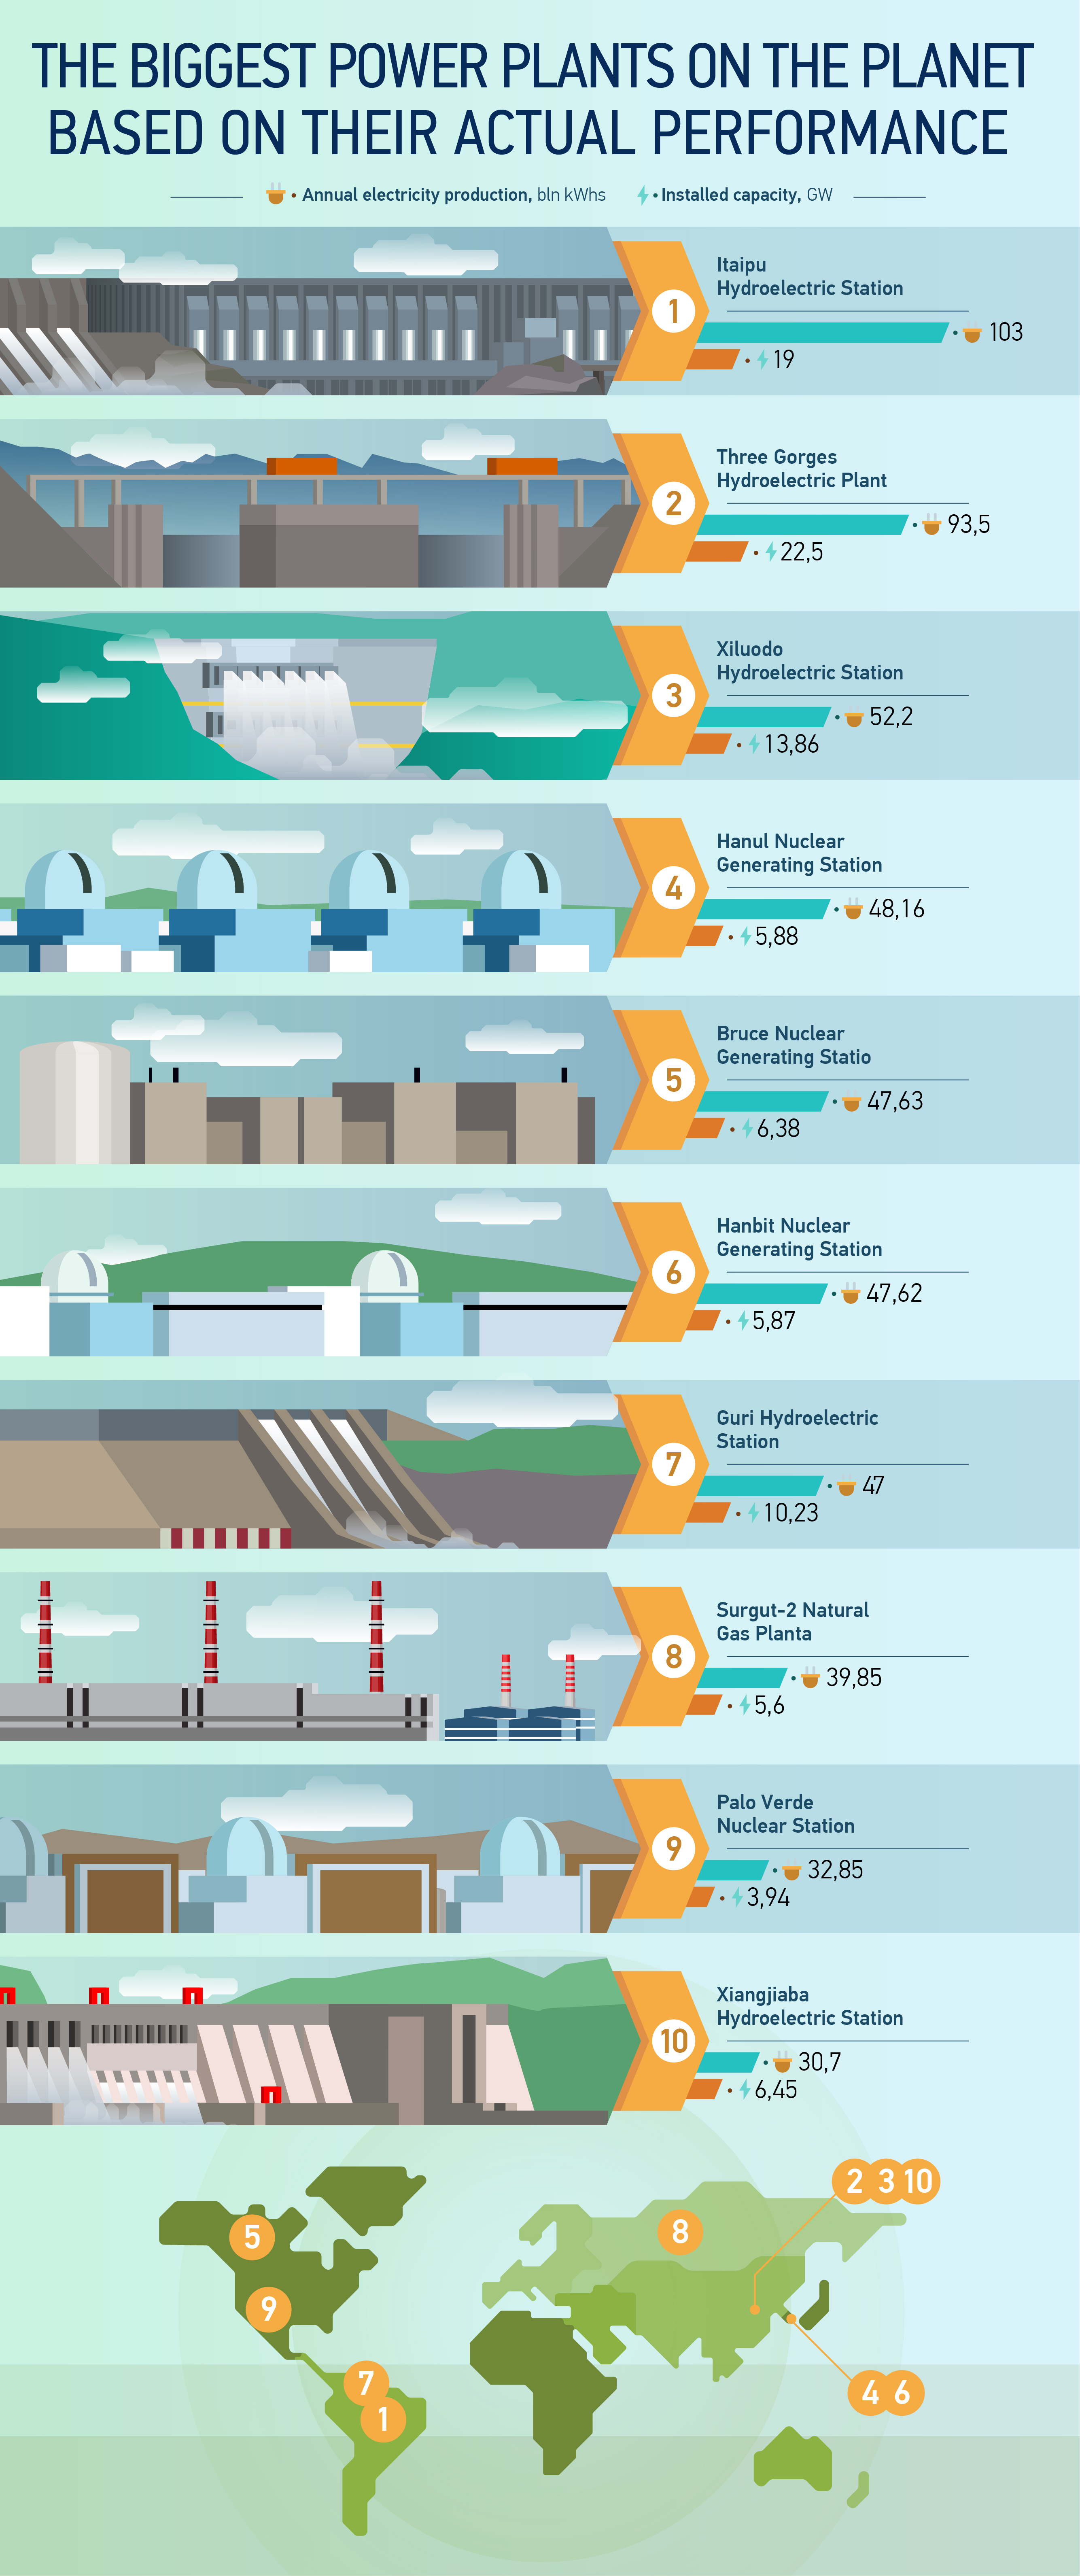 Real Power: The biggest power plants on the planet based on their actual performance